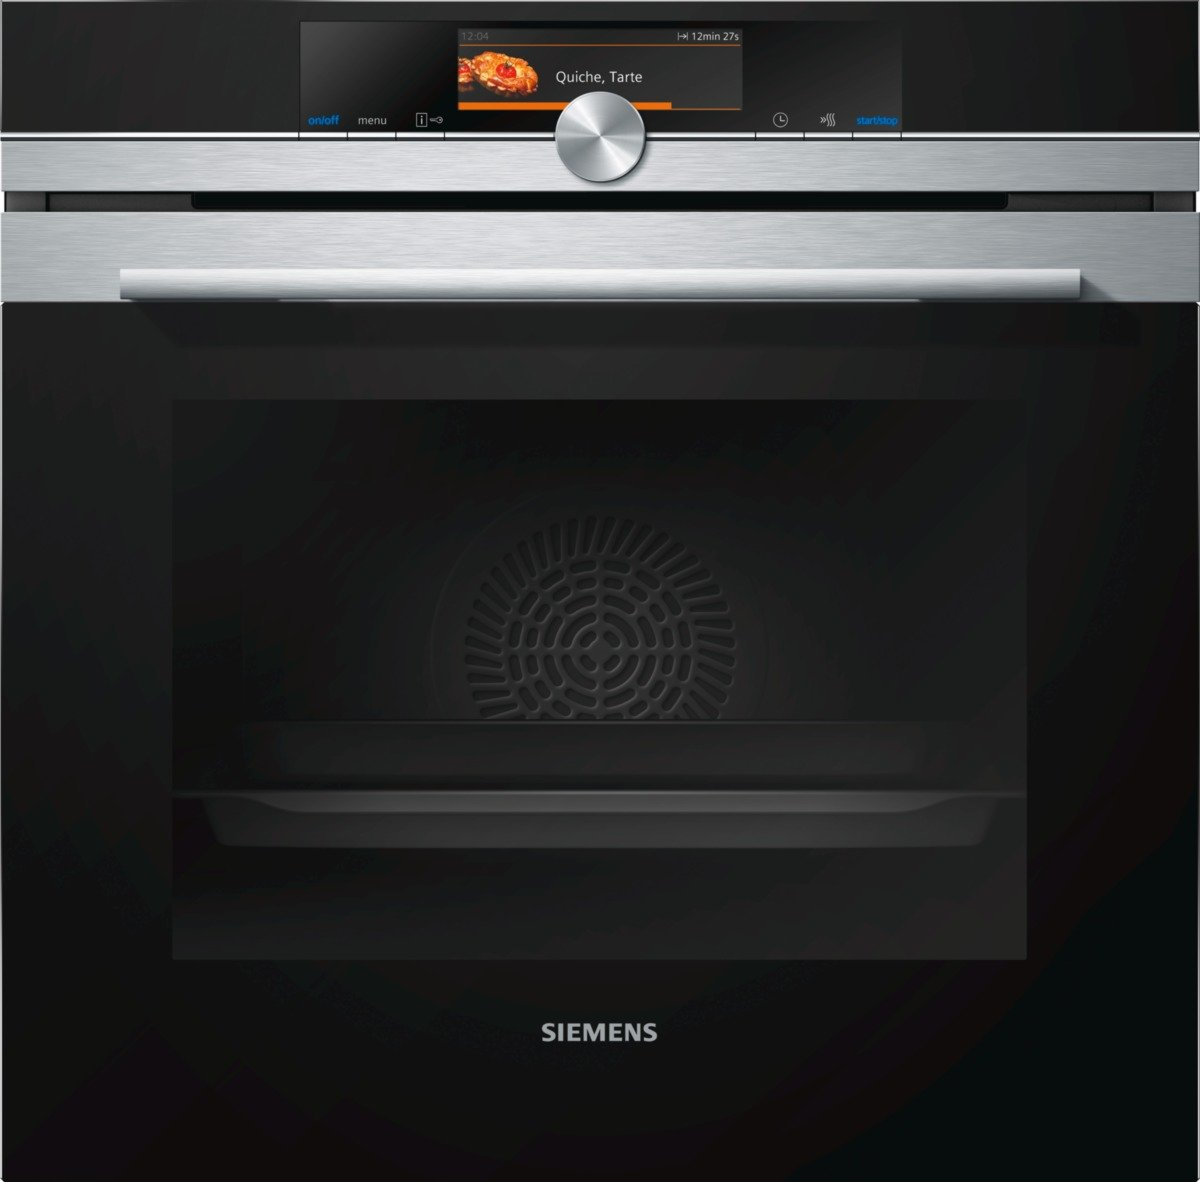 Siemens iQ700 Home Connect Backofen / Home Connect / Wifi remote Control / TFT Touch Display / EEK: A / activeClean / 4D Heissluft [Energieklasse A] HB678GBS6